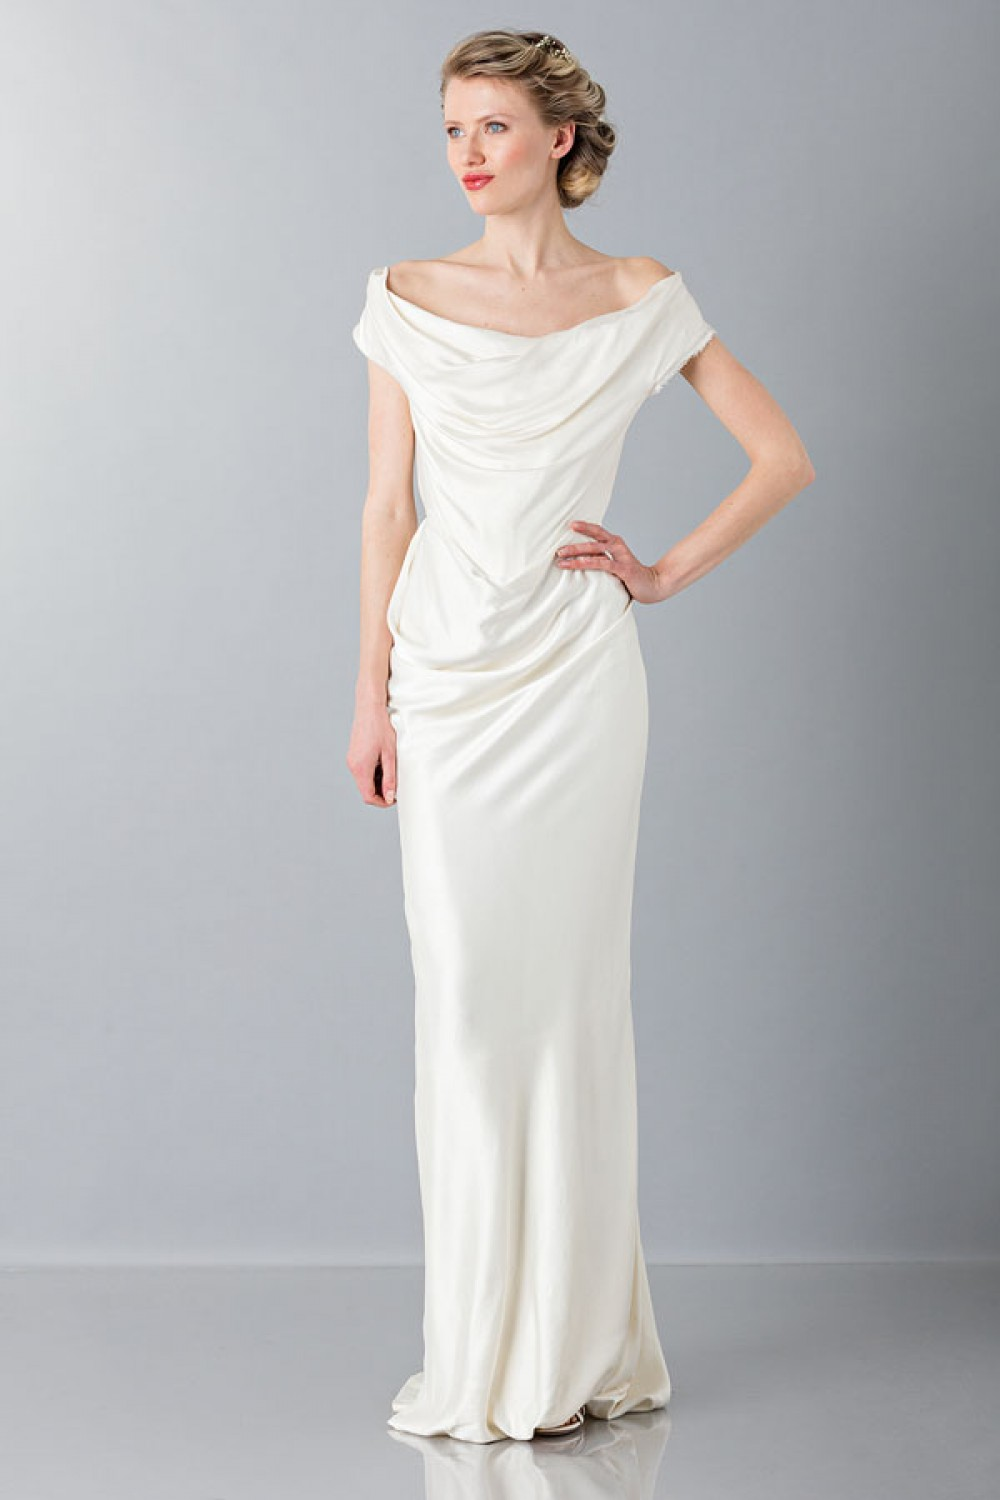 Rent a vivienne westwood dress wedding dress for Wedding dresses for 60 year olds